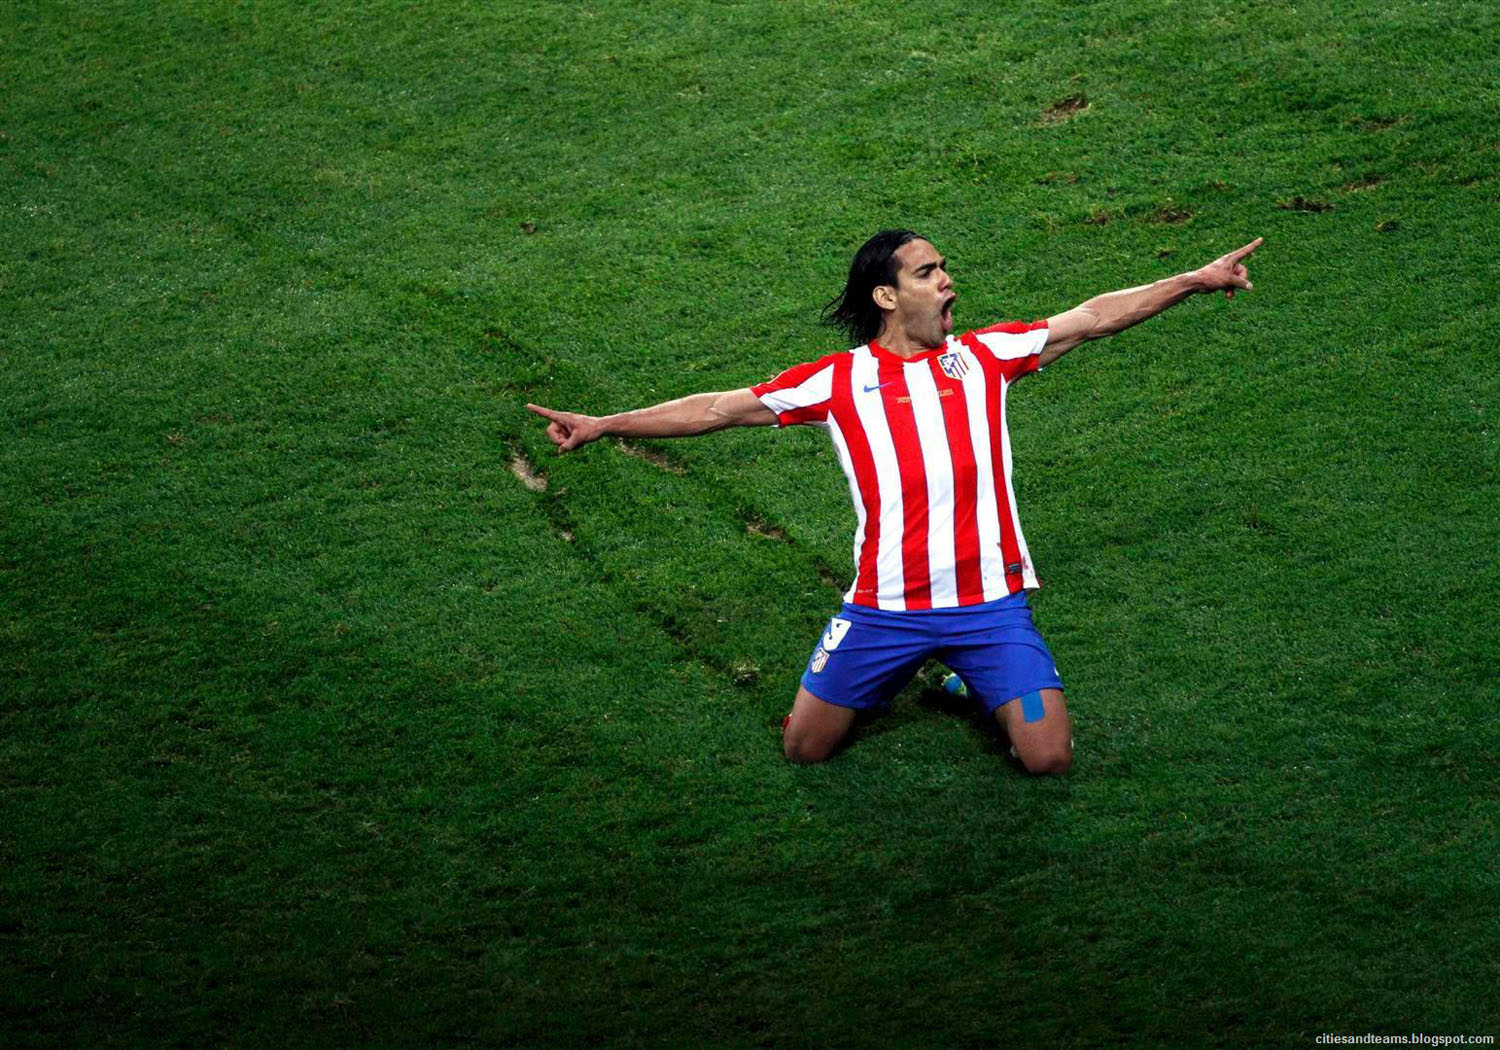 Club Atletico de Madrid - Página 3 Radamel_Falcao_The_Hero_Of_Europa_League_Final_2012_Atletico_Madrid_Hd_Wallpaper_citiesandteams.blogspot.com